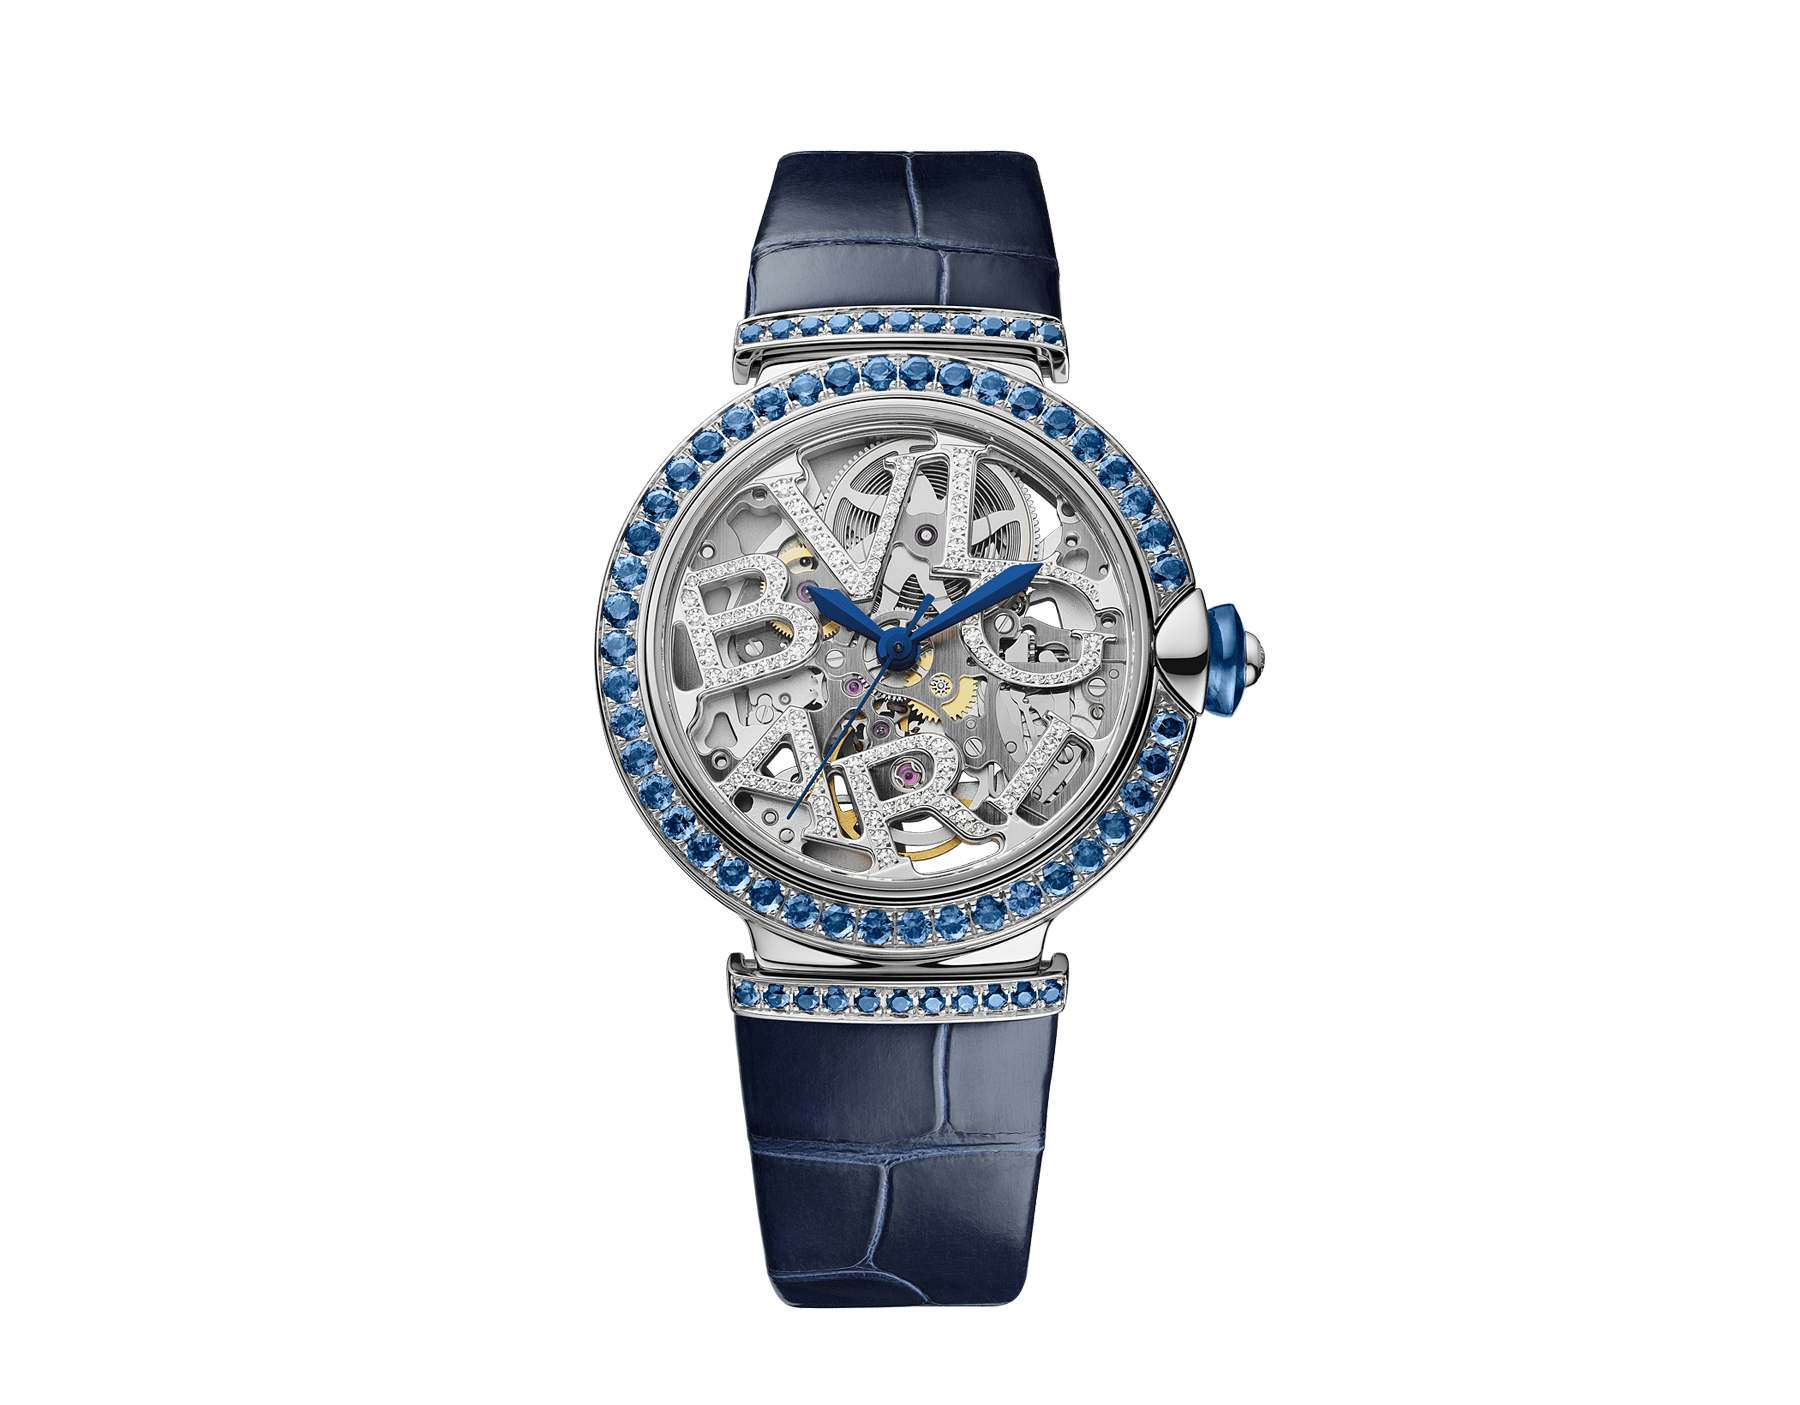 LVCEA Skeleton watch with mechanical movement, automatic winding and skeleton execution, 18 kt white gold case and links set with round brilliant-cut sapphires, 18 kt white gold openwork BVLGARI logo dial set with round brilliant-cut diamonds, blue lacquered hands and blue alligator bracelet 103091 image 1